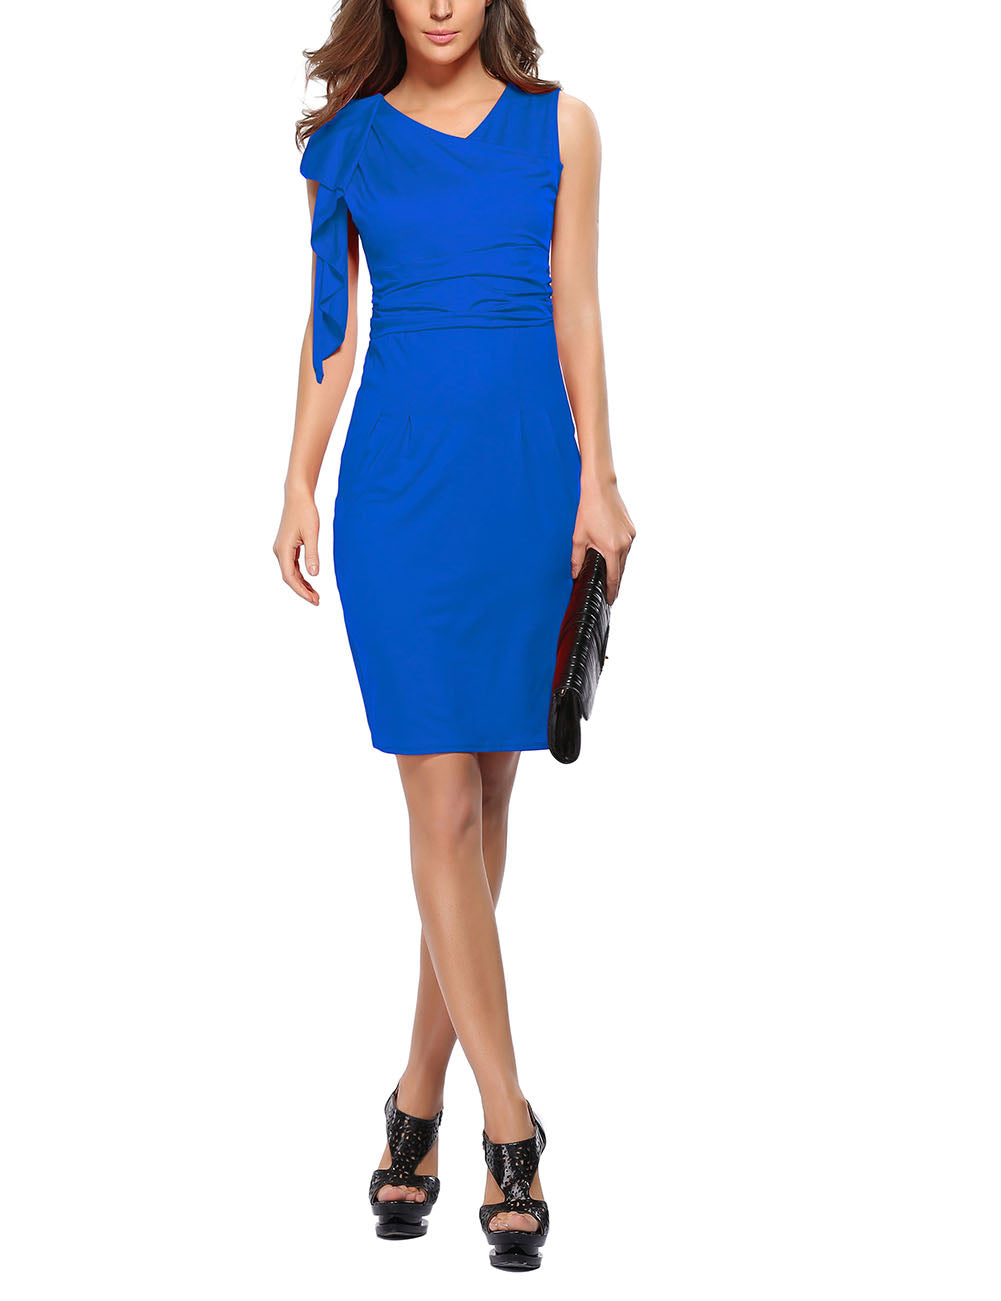 Flirtatious Big High Rise Tight Dress Mini Length Outdoor